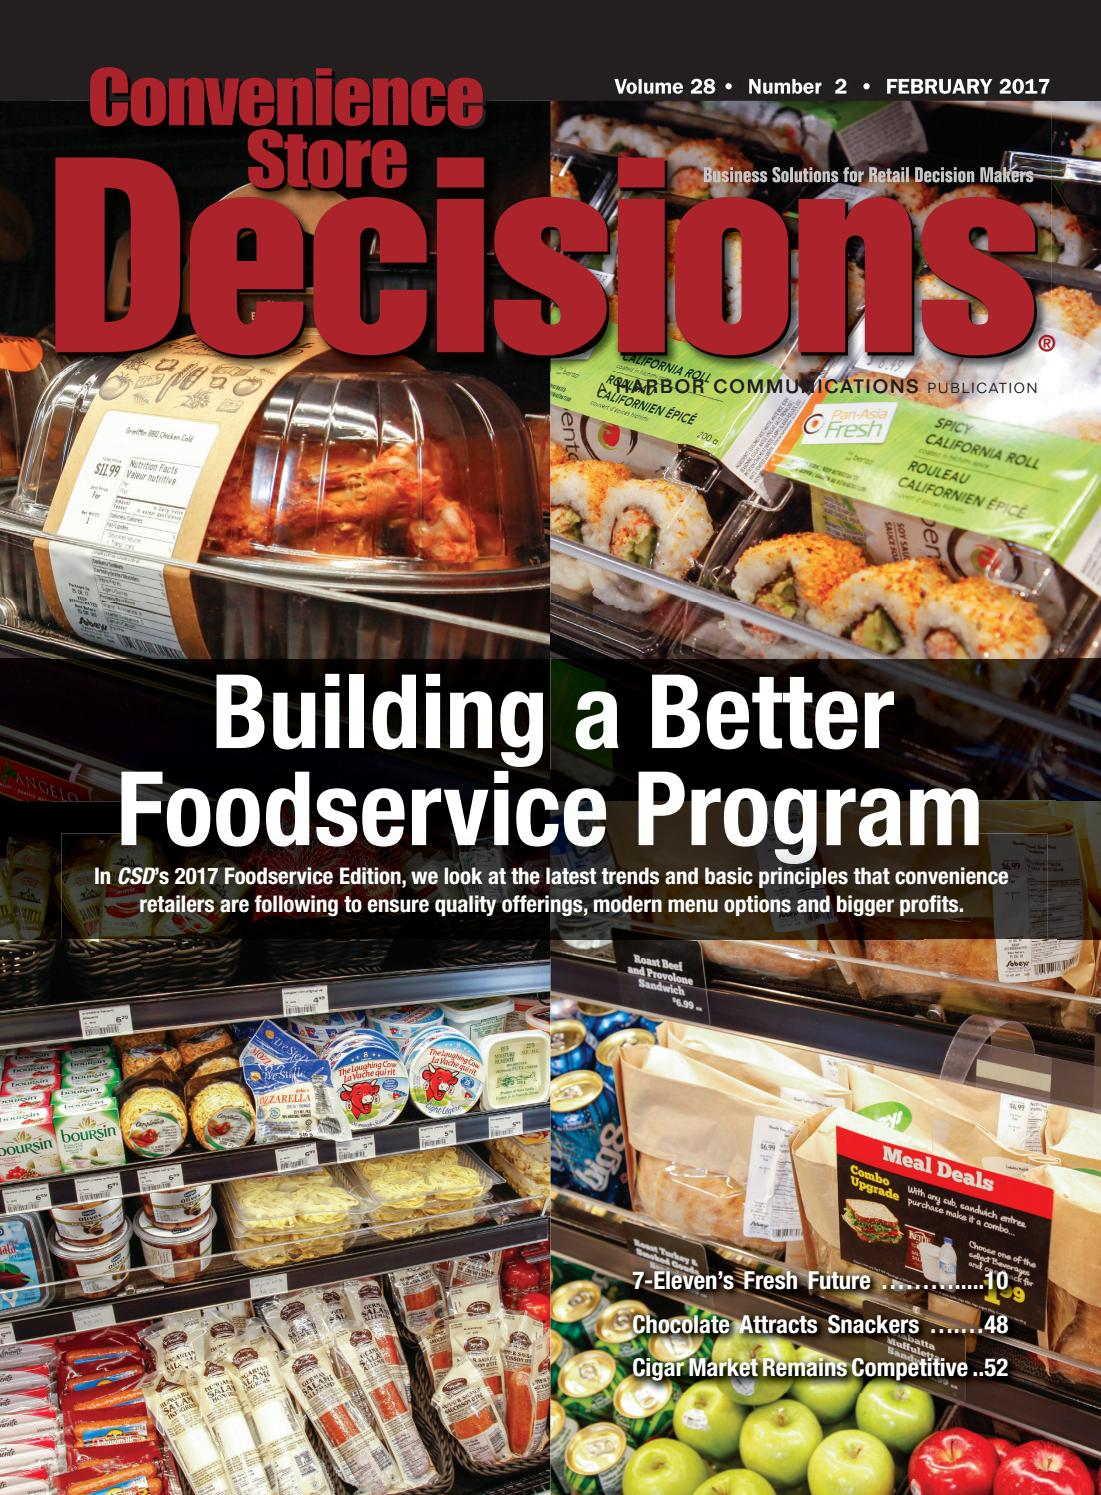 Convenience Store Decisions February 2017 By WTWH Media LLC